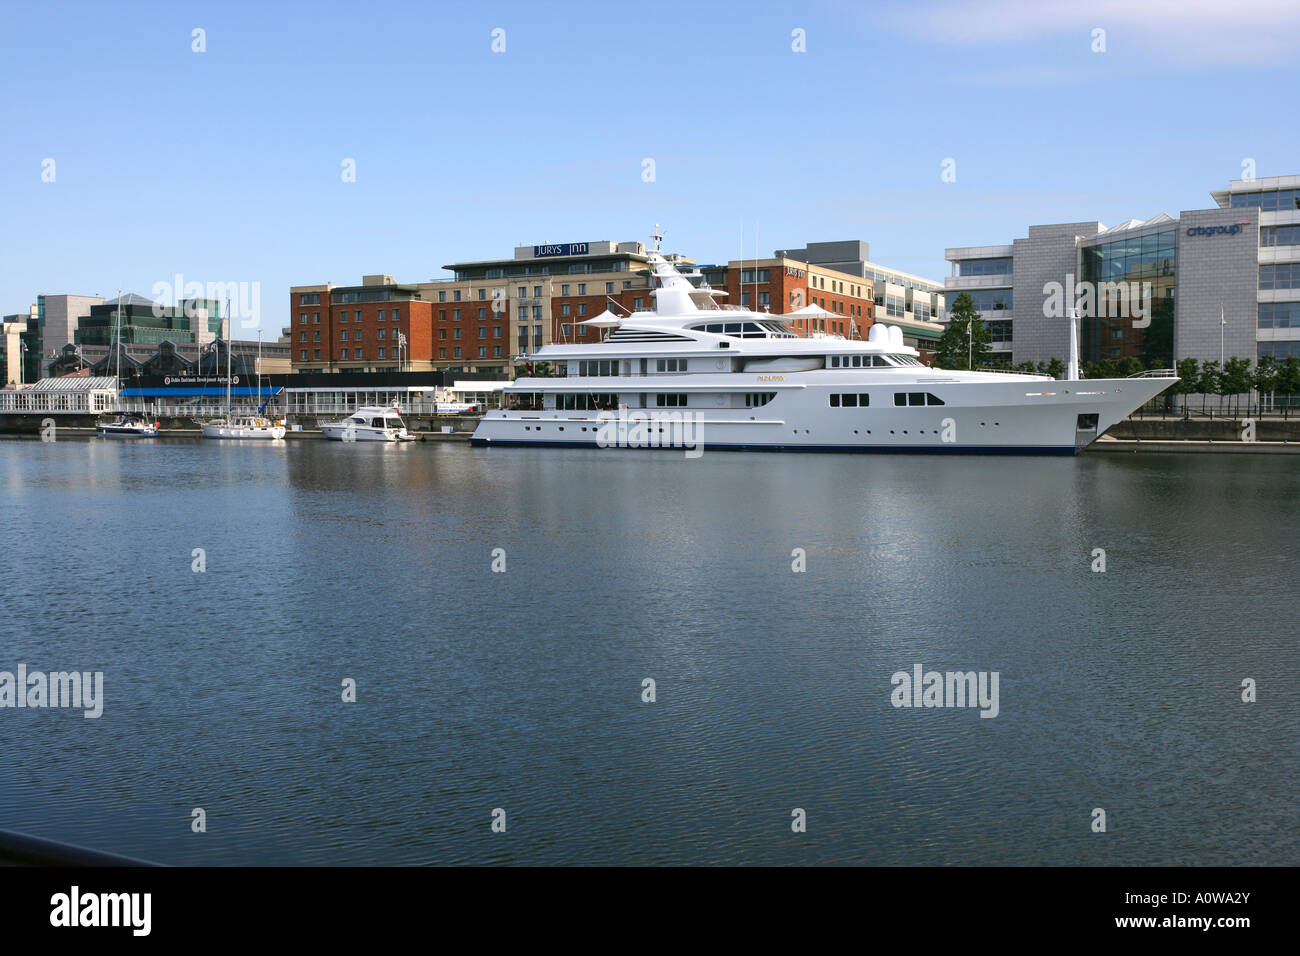 charter yacht paraffin docked - Stock Image